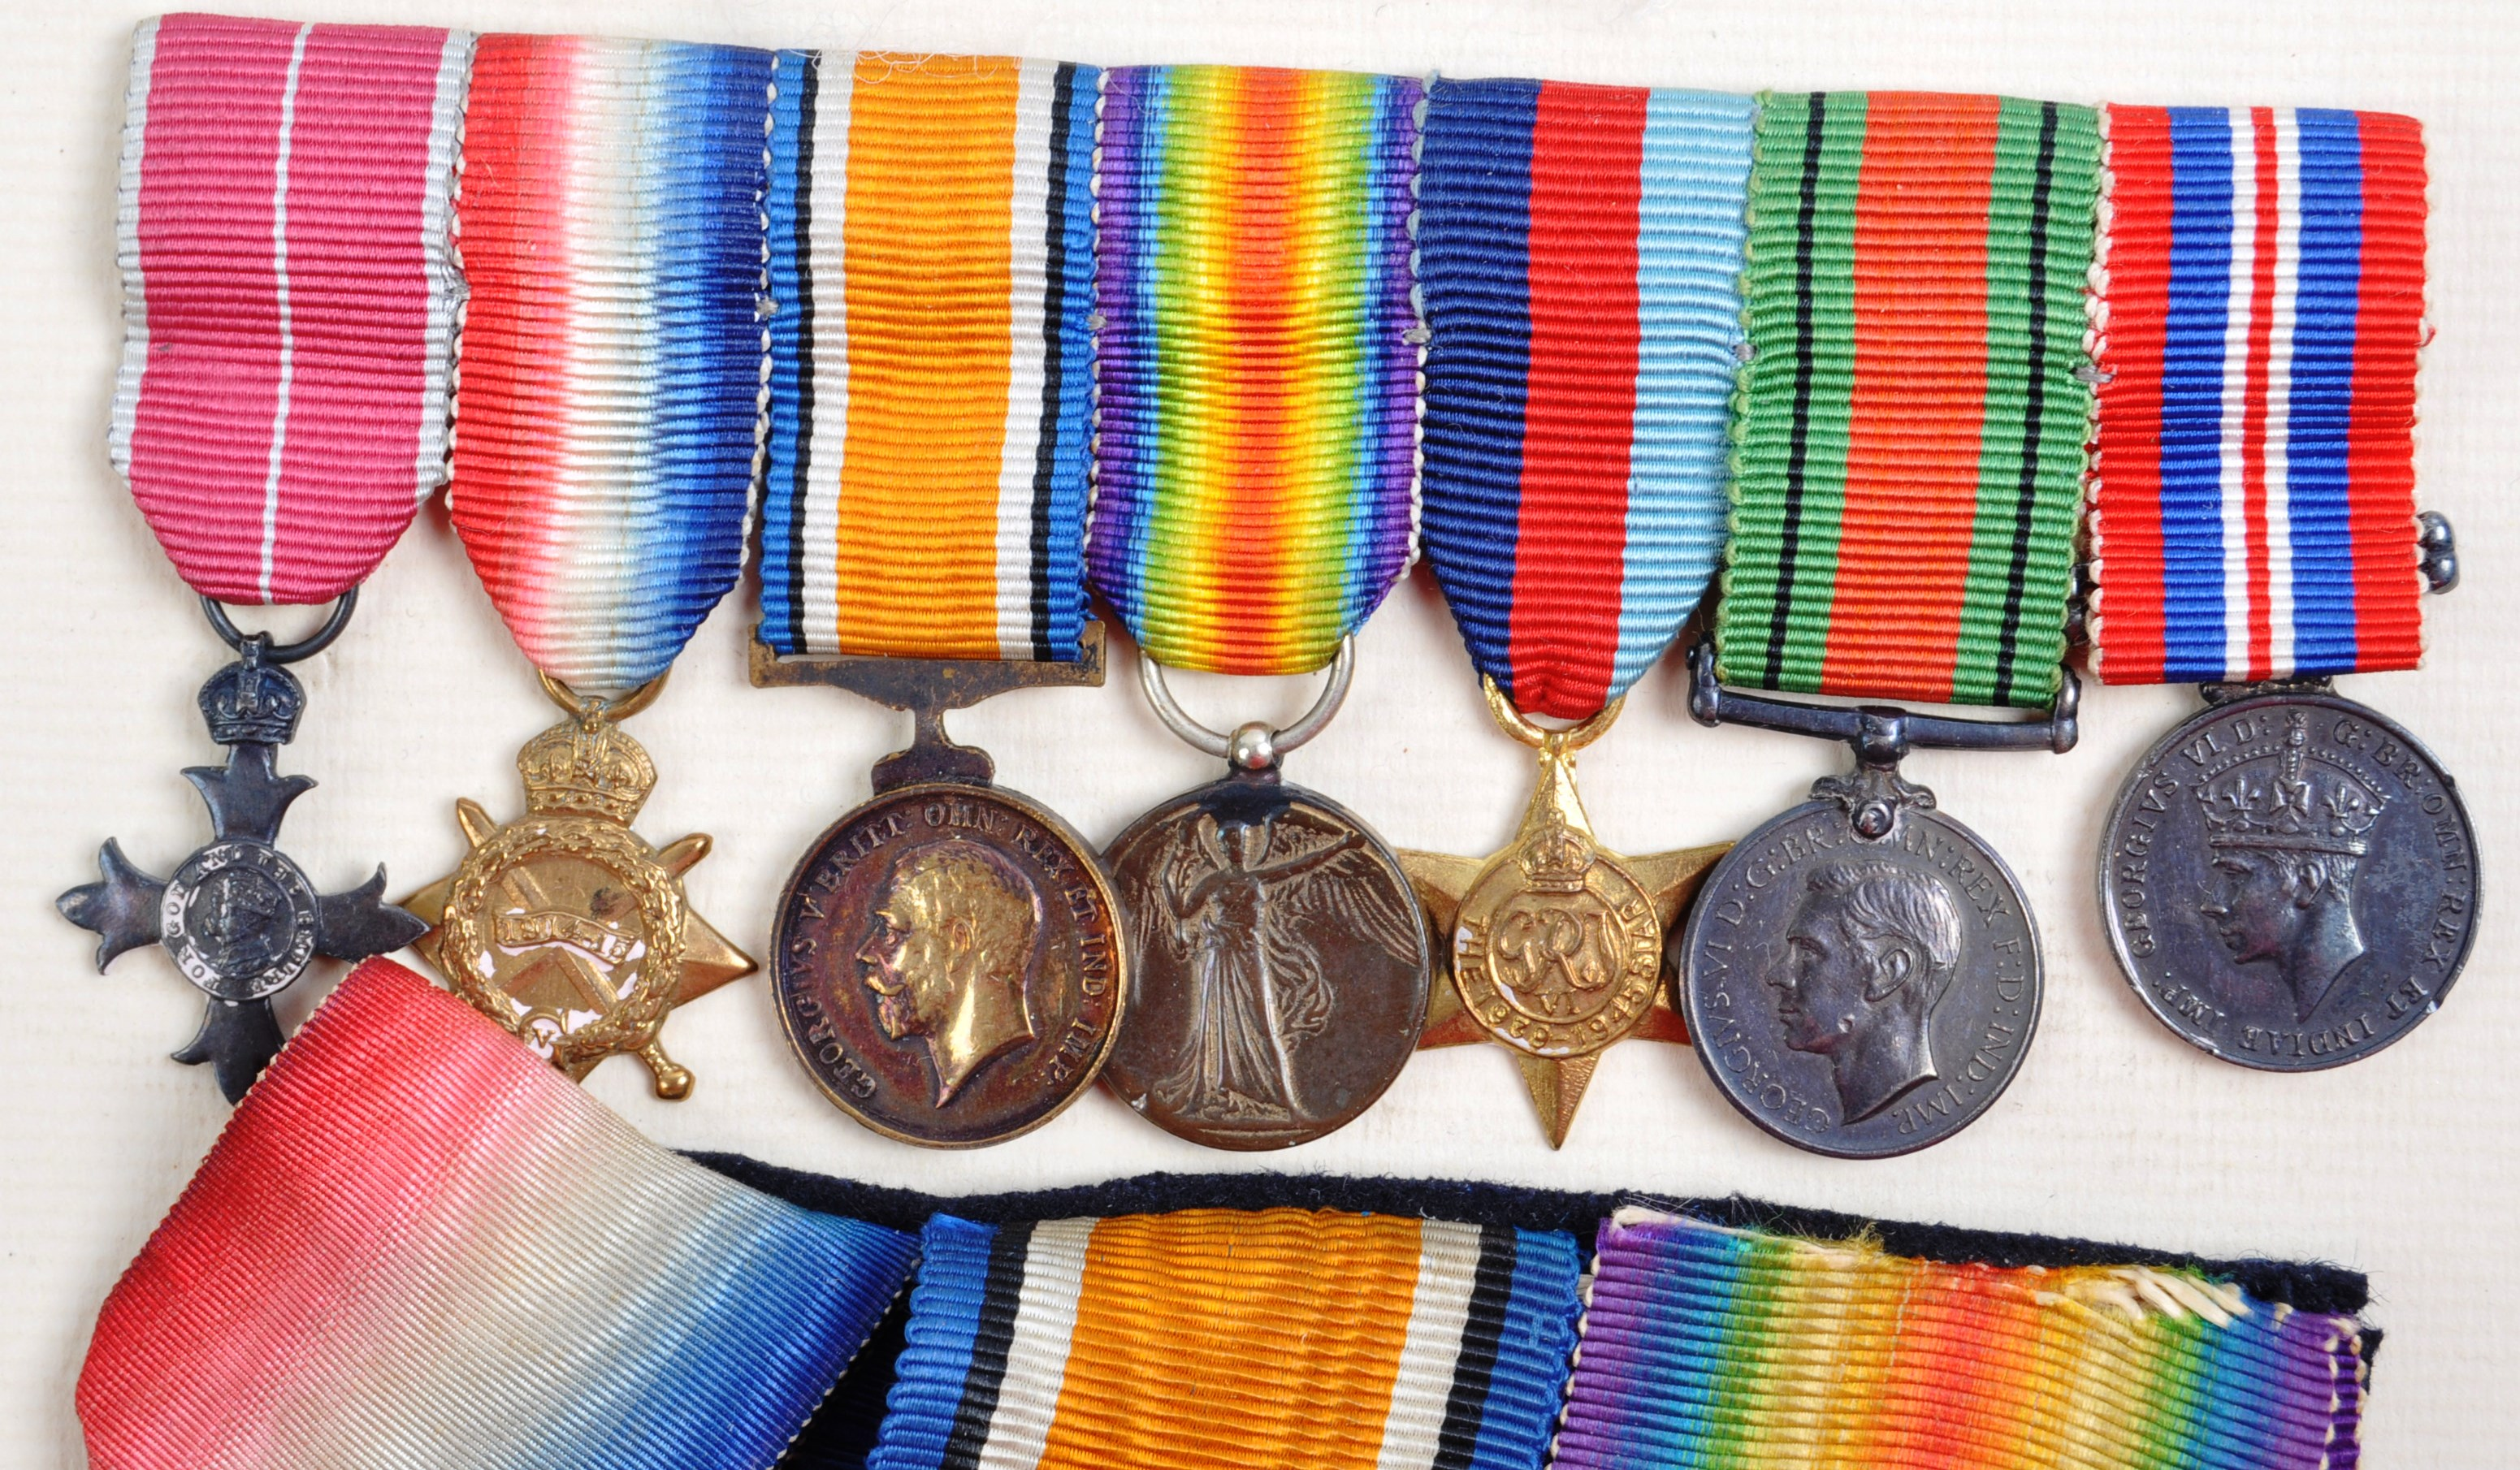 WWI & WWII SECOND WORLD WAR MEDAL GROUP - ROYAL NAVY - Image 4 of 5